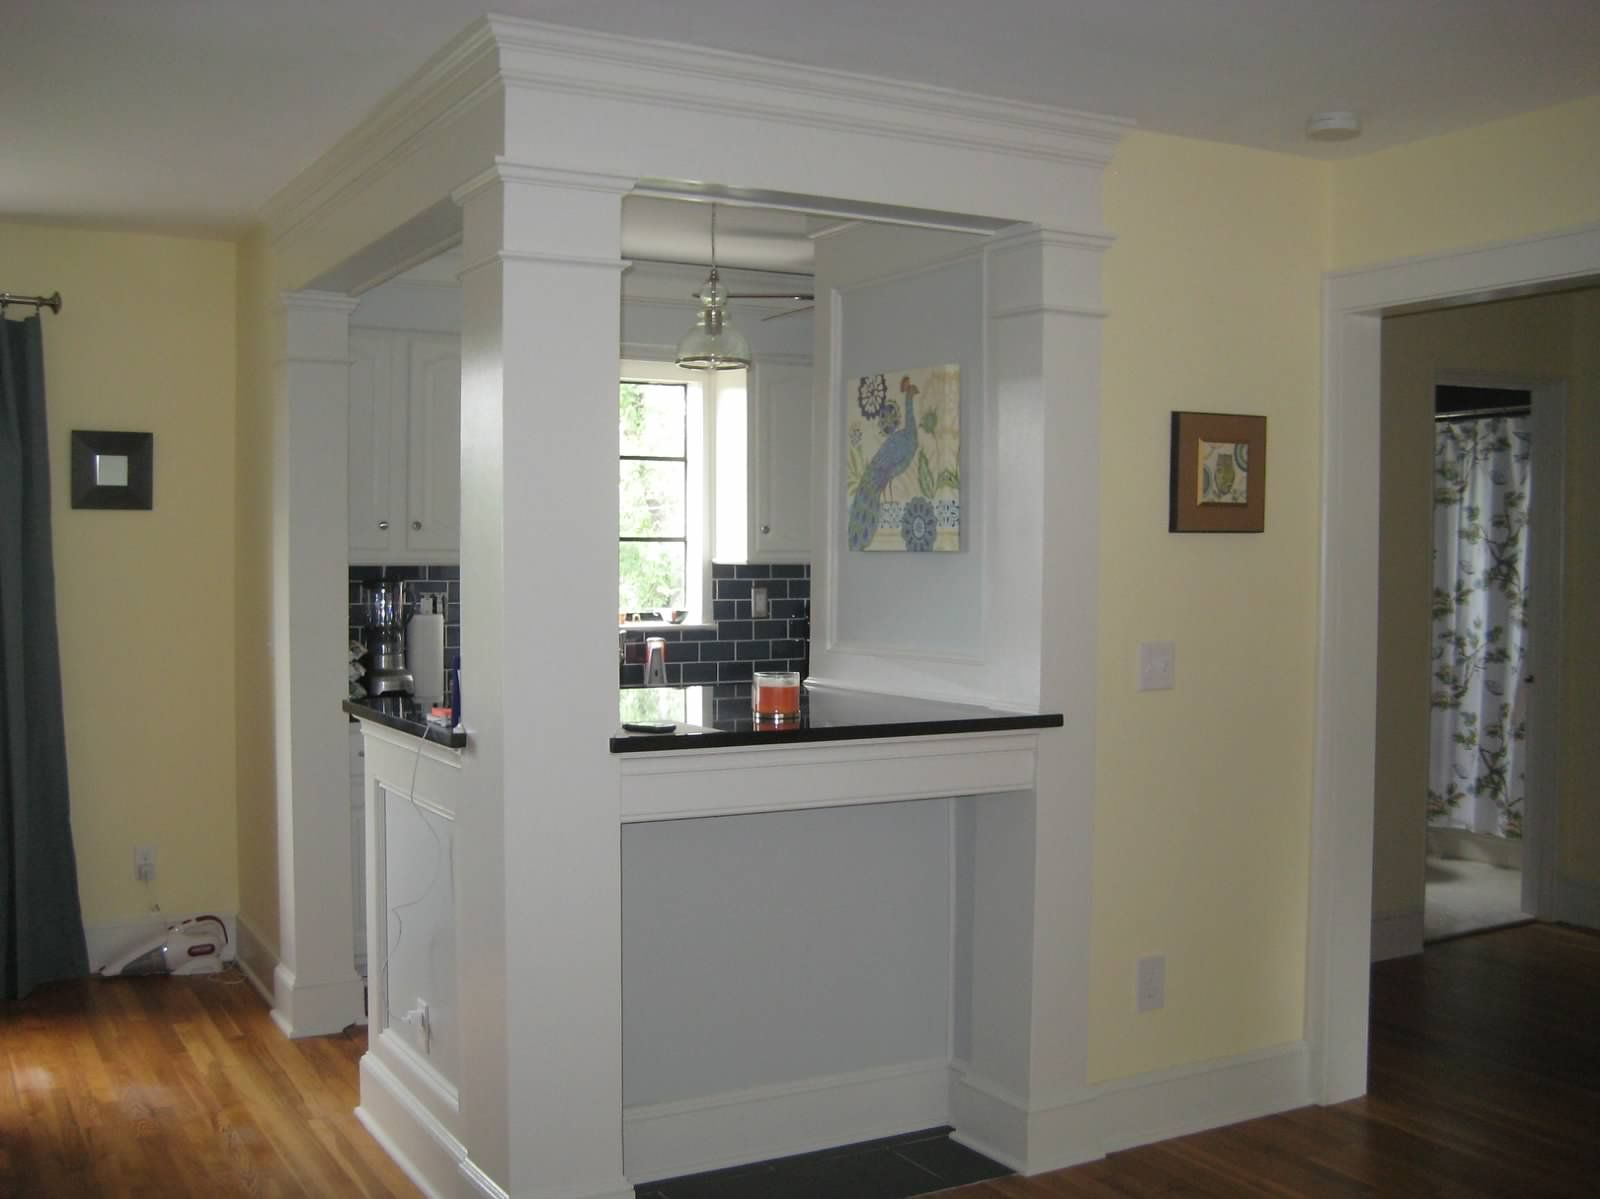 galley kitchen turned into breakfast bar | Home | Kitchen ... on 10x10 kitchen layout with peninsula cooktop, 10x10 bedroom layout, 10x10 kitchen layout ideas, 10x10 family room layout,